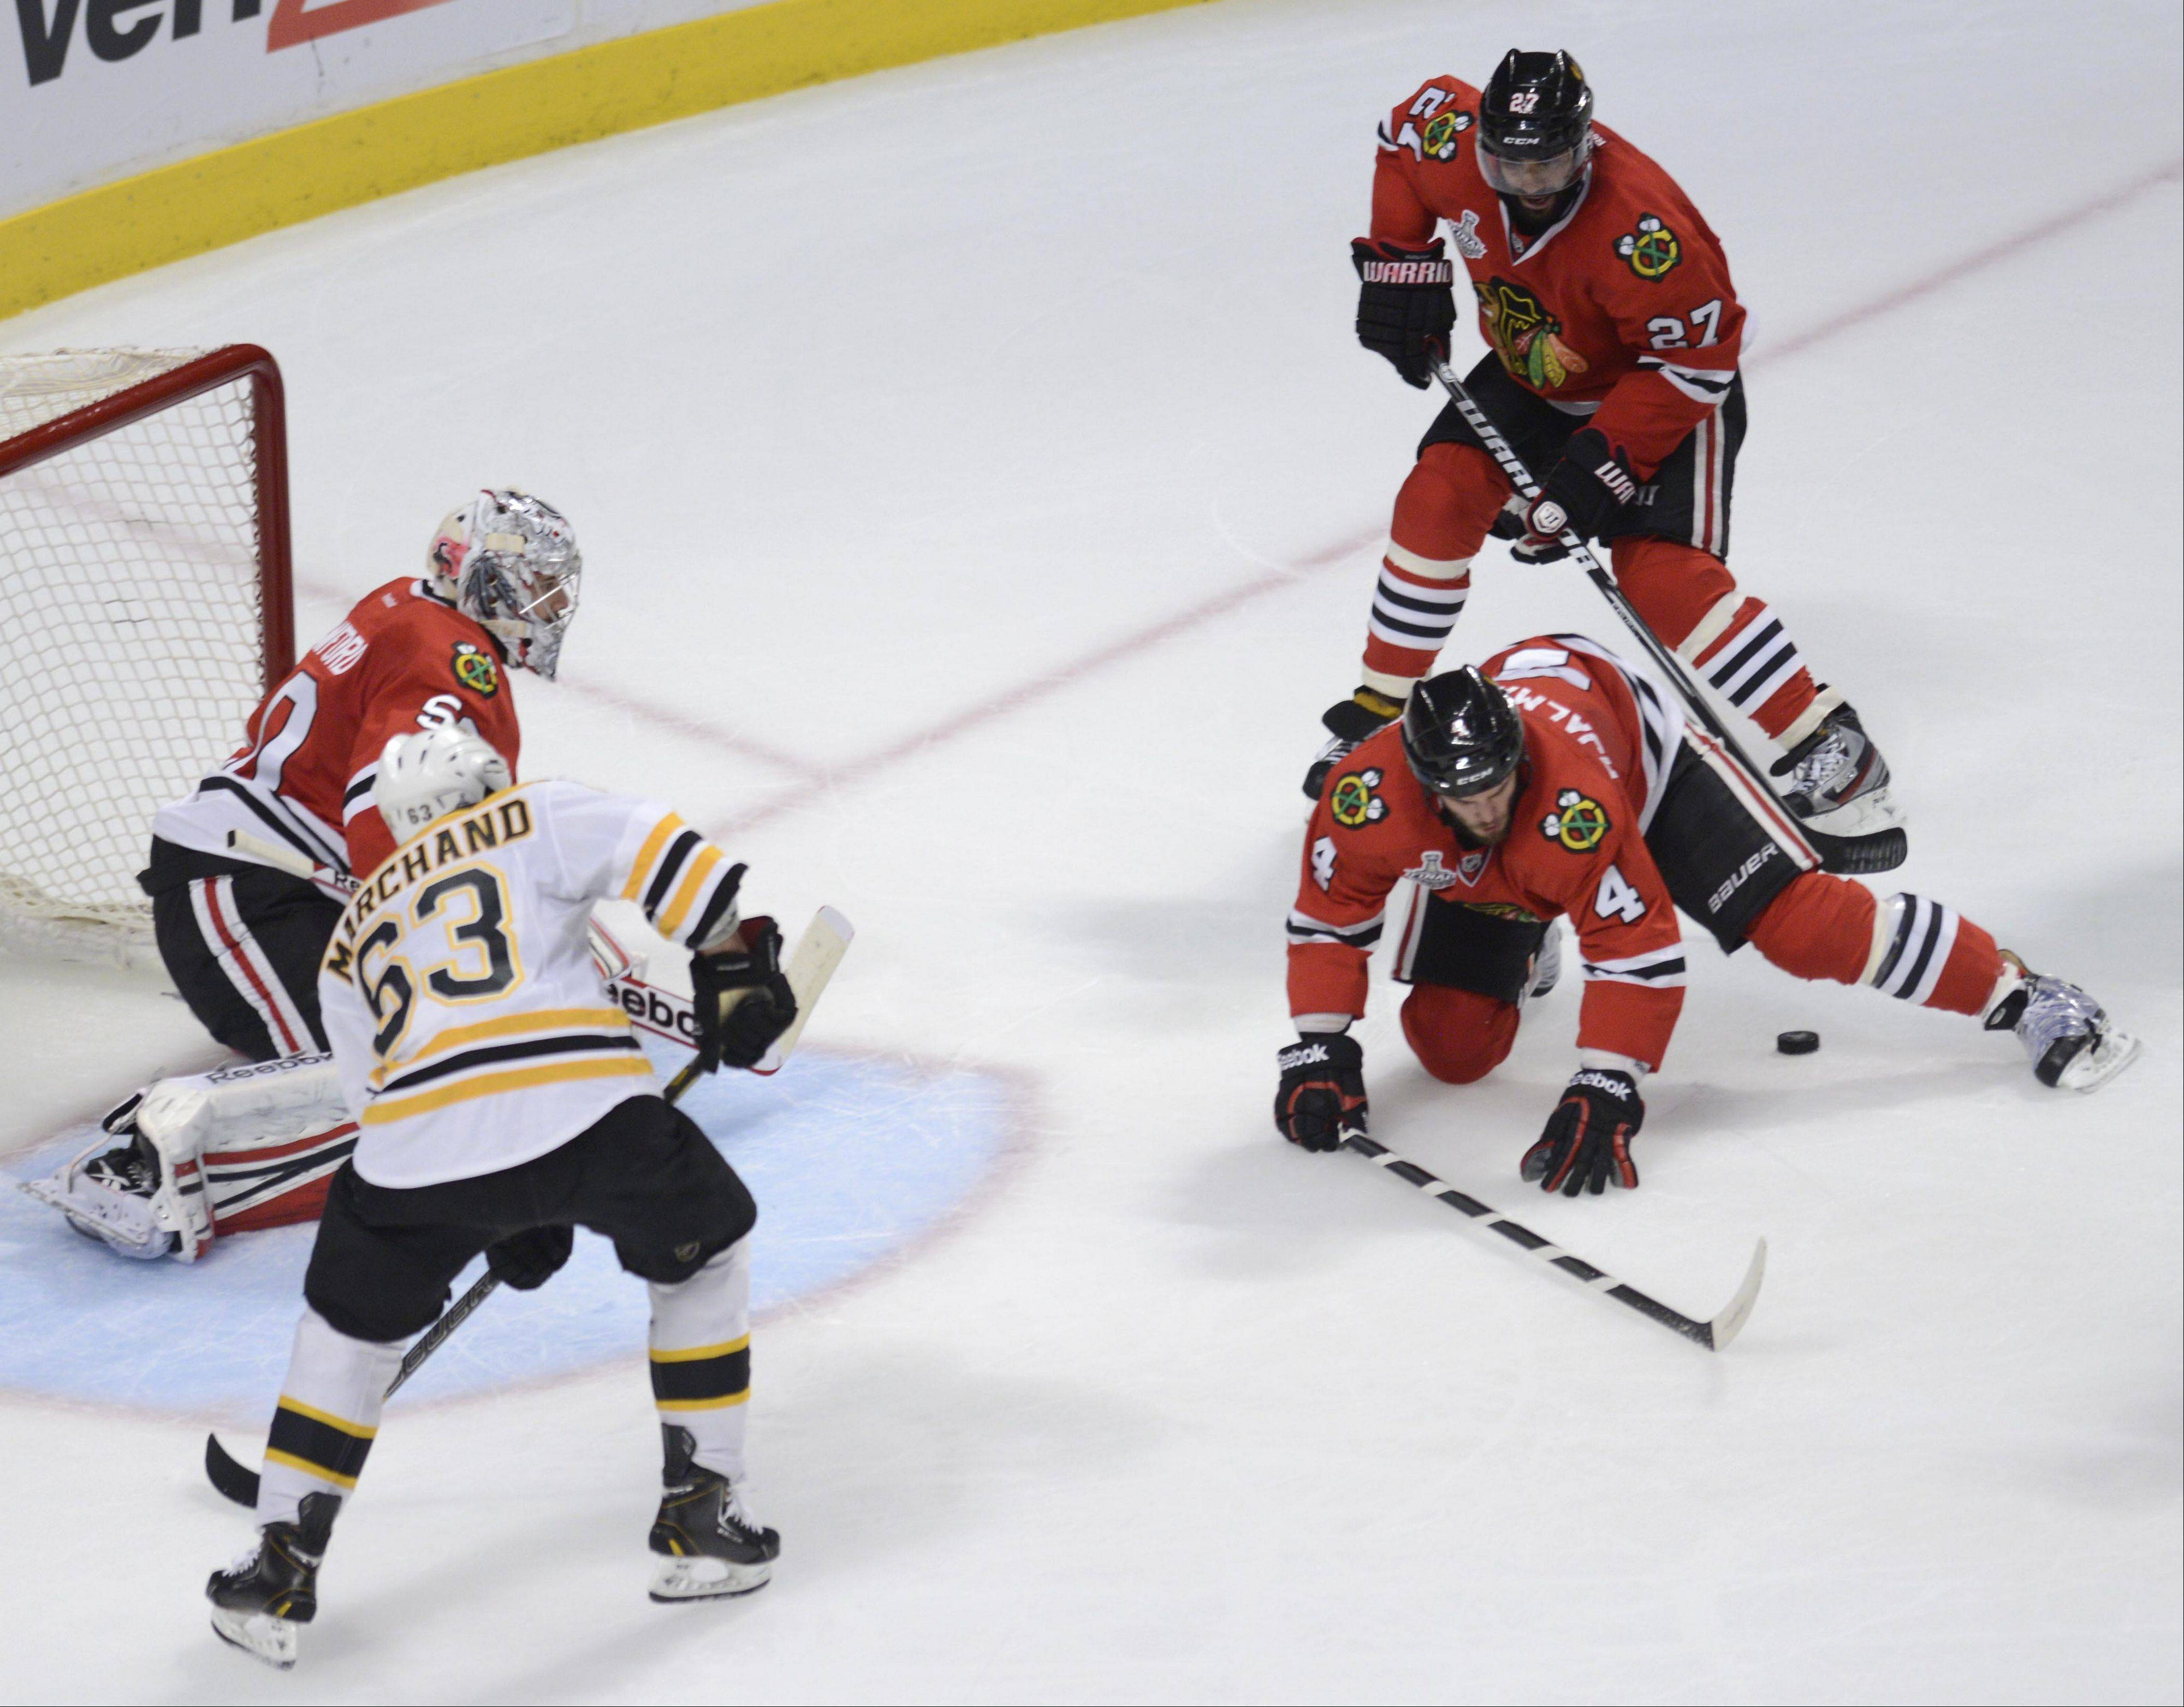 Chicago Blackhawks defenseman Niklas Hjalmarsson falls over the loose puck as Boston Bruins left wing Brad Marchand comes into position in front of the net.